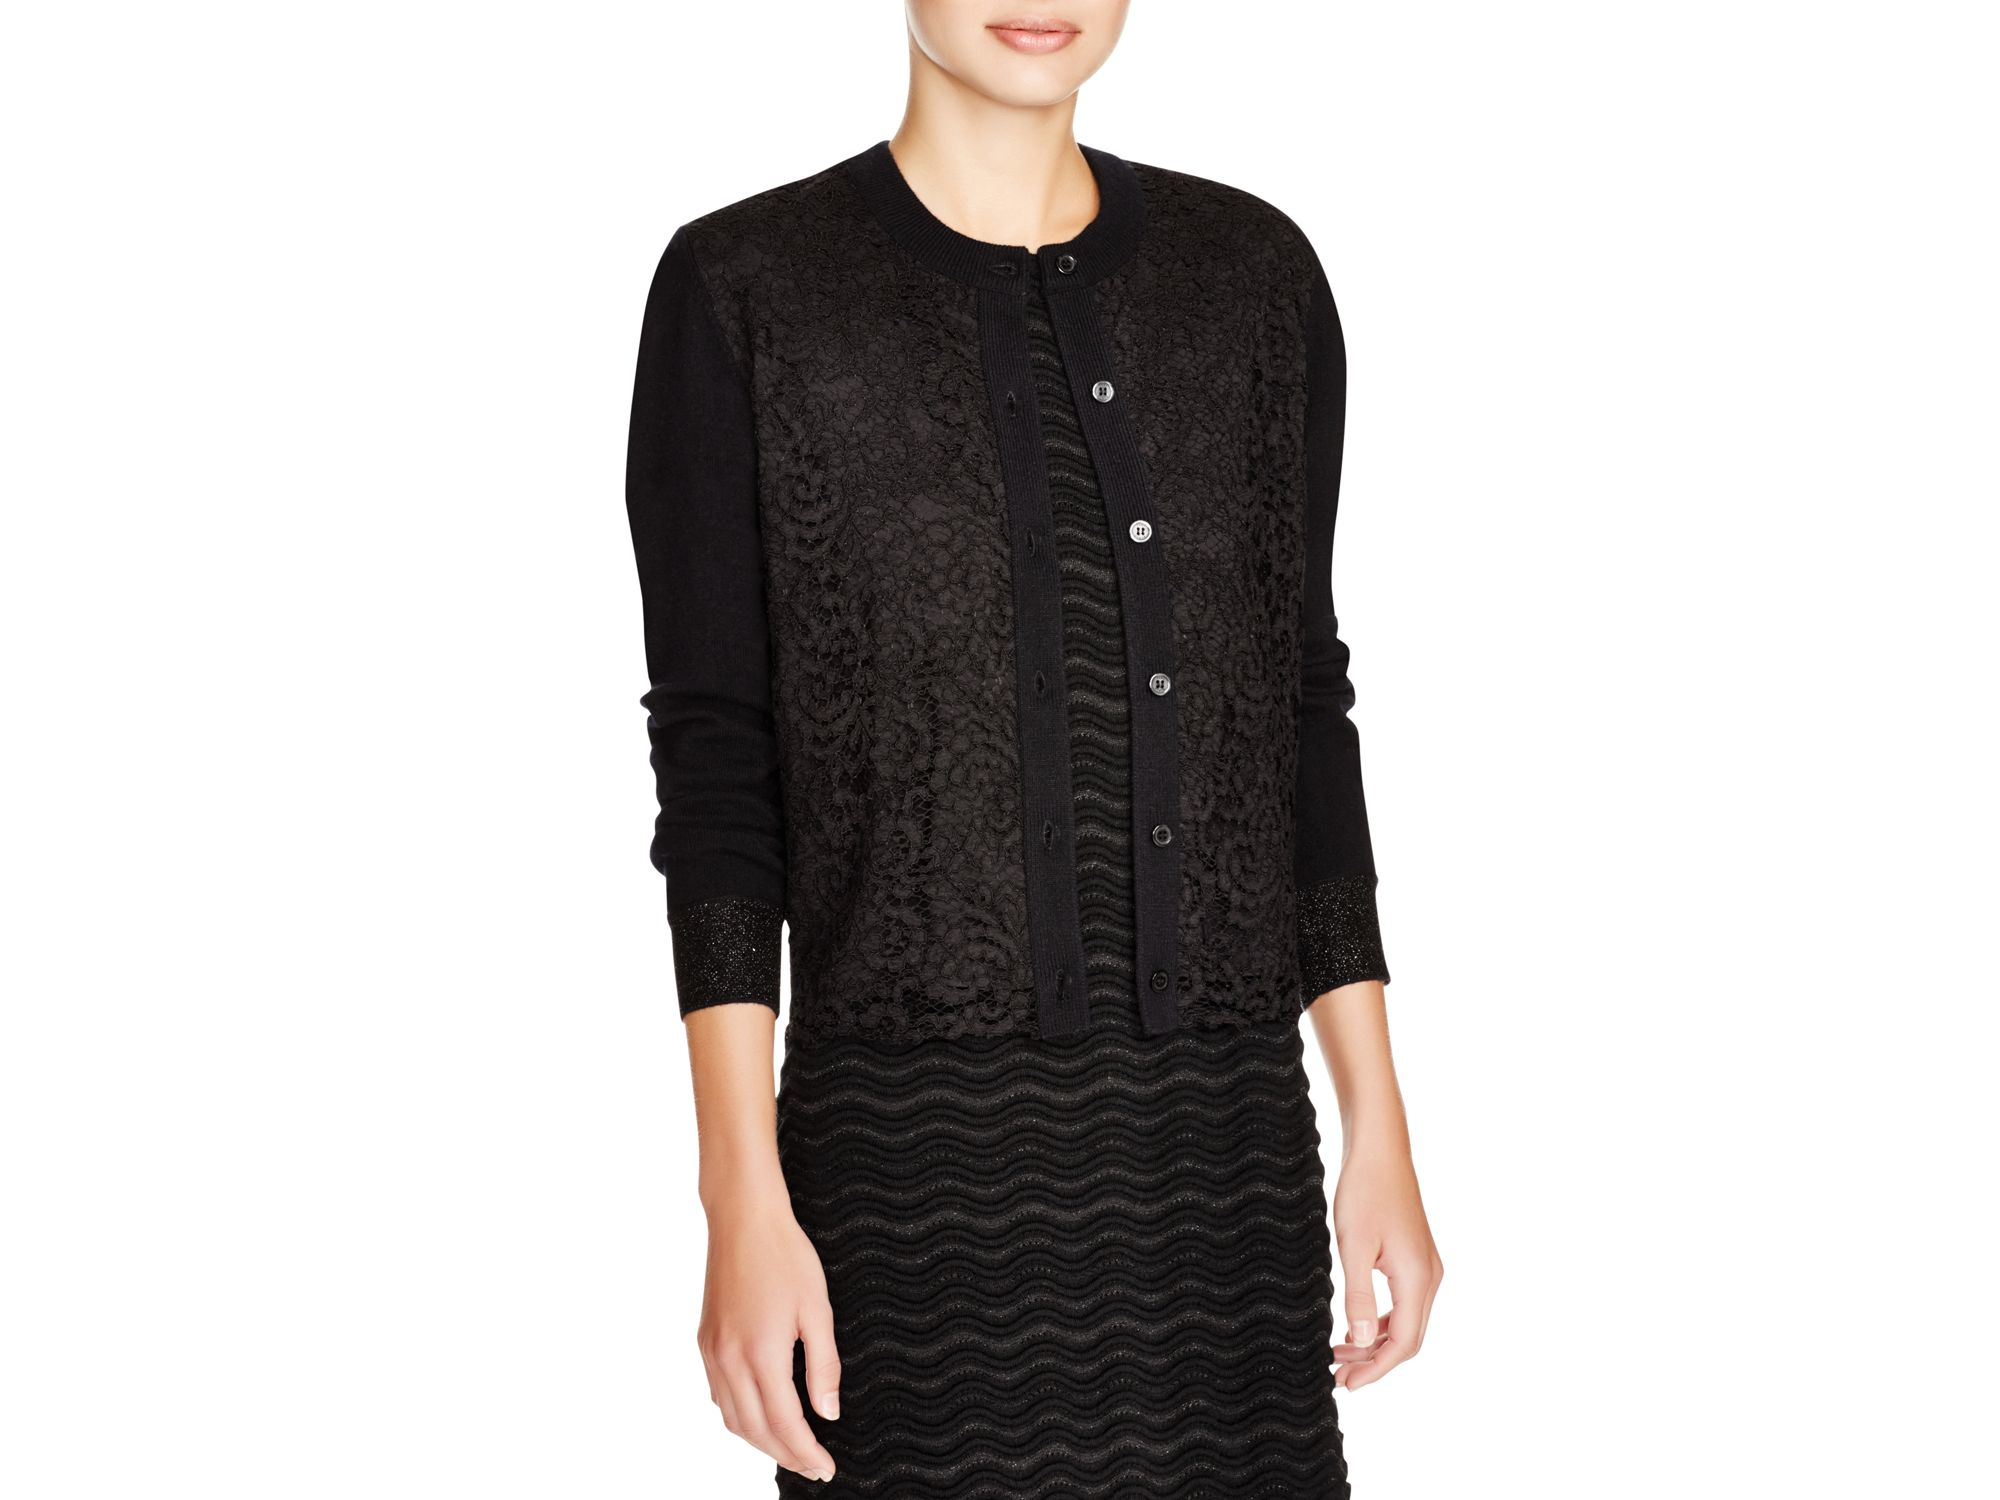 Tory burch Lace Front Cardigan in Black | Lyst